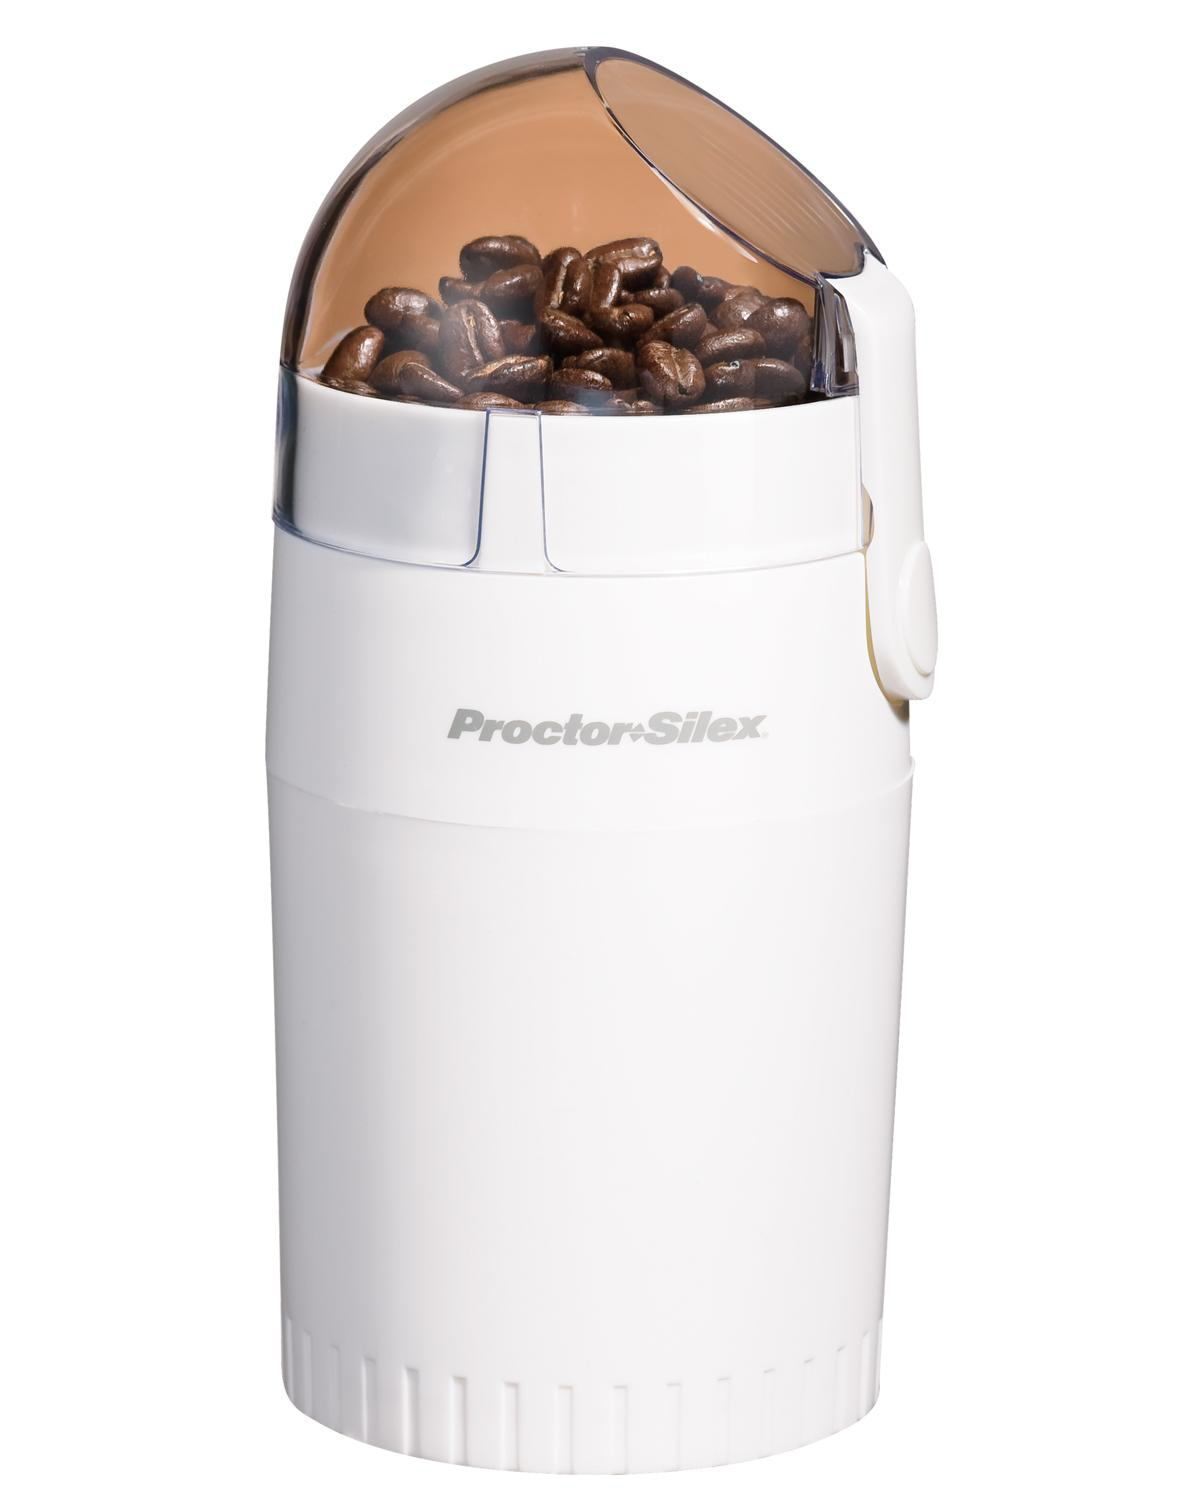 Amazon.com: Proctor Silex E160BY Fresh Grind Coffee Grinder, White: Power Blade Coffee Grinders ...